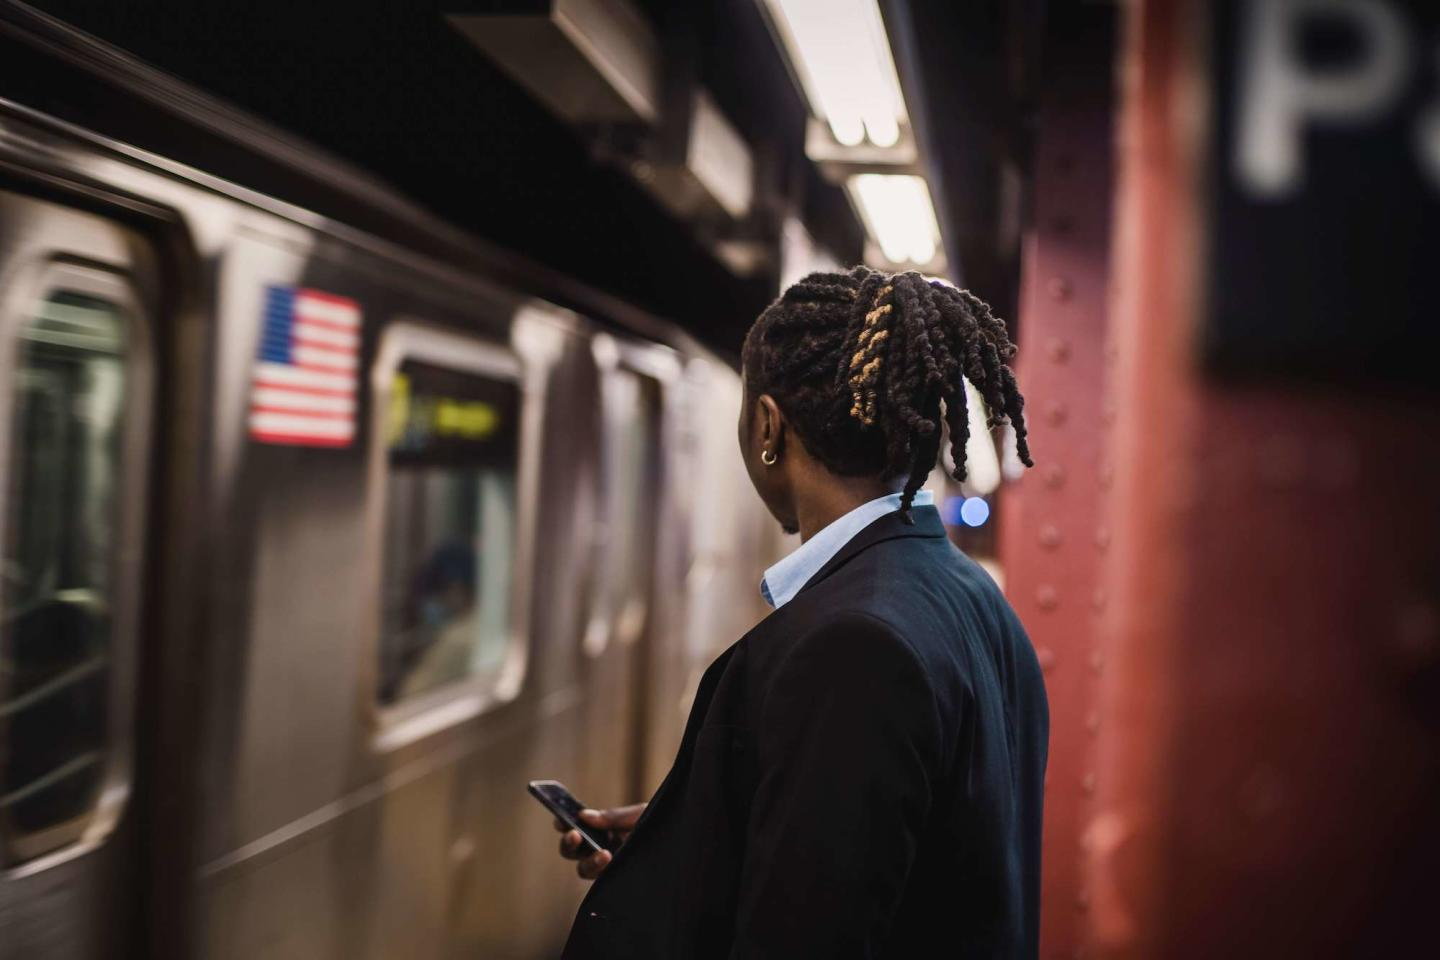 A man waiting for the New York Subway holding his phone